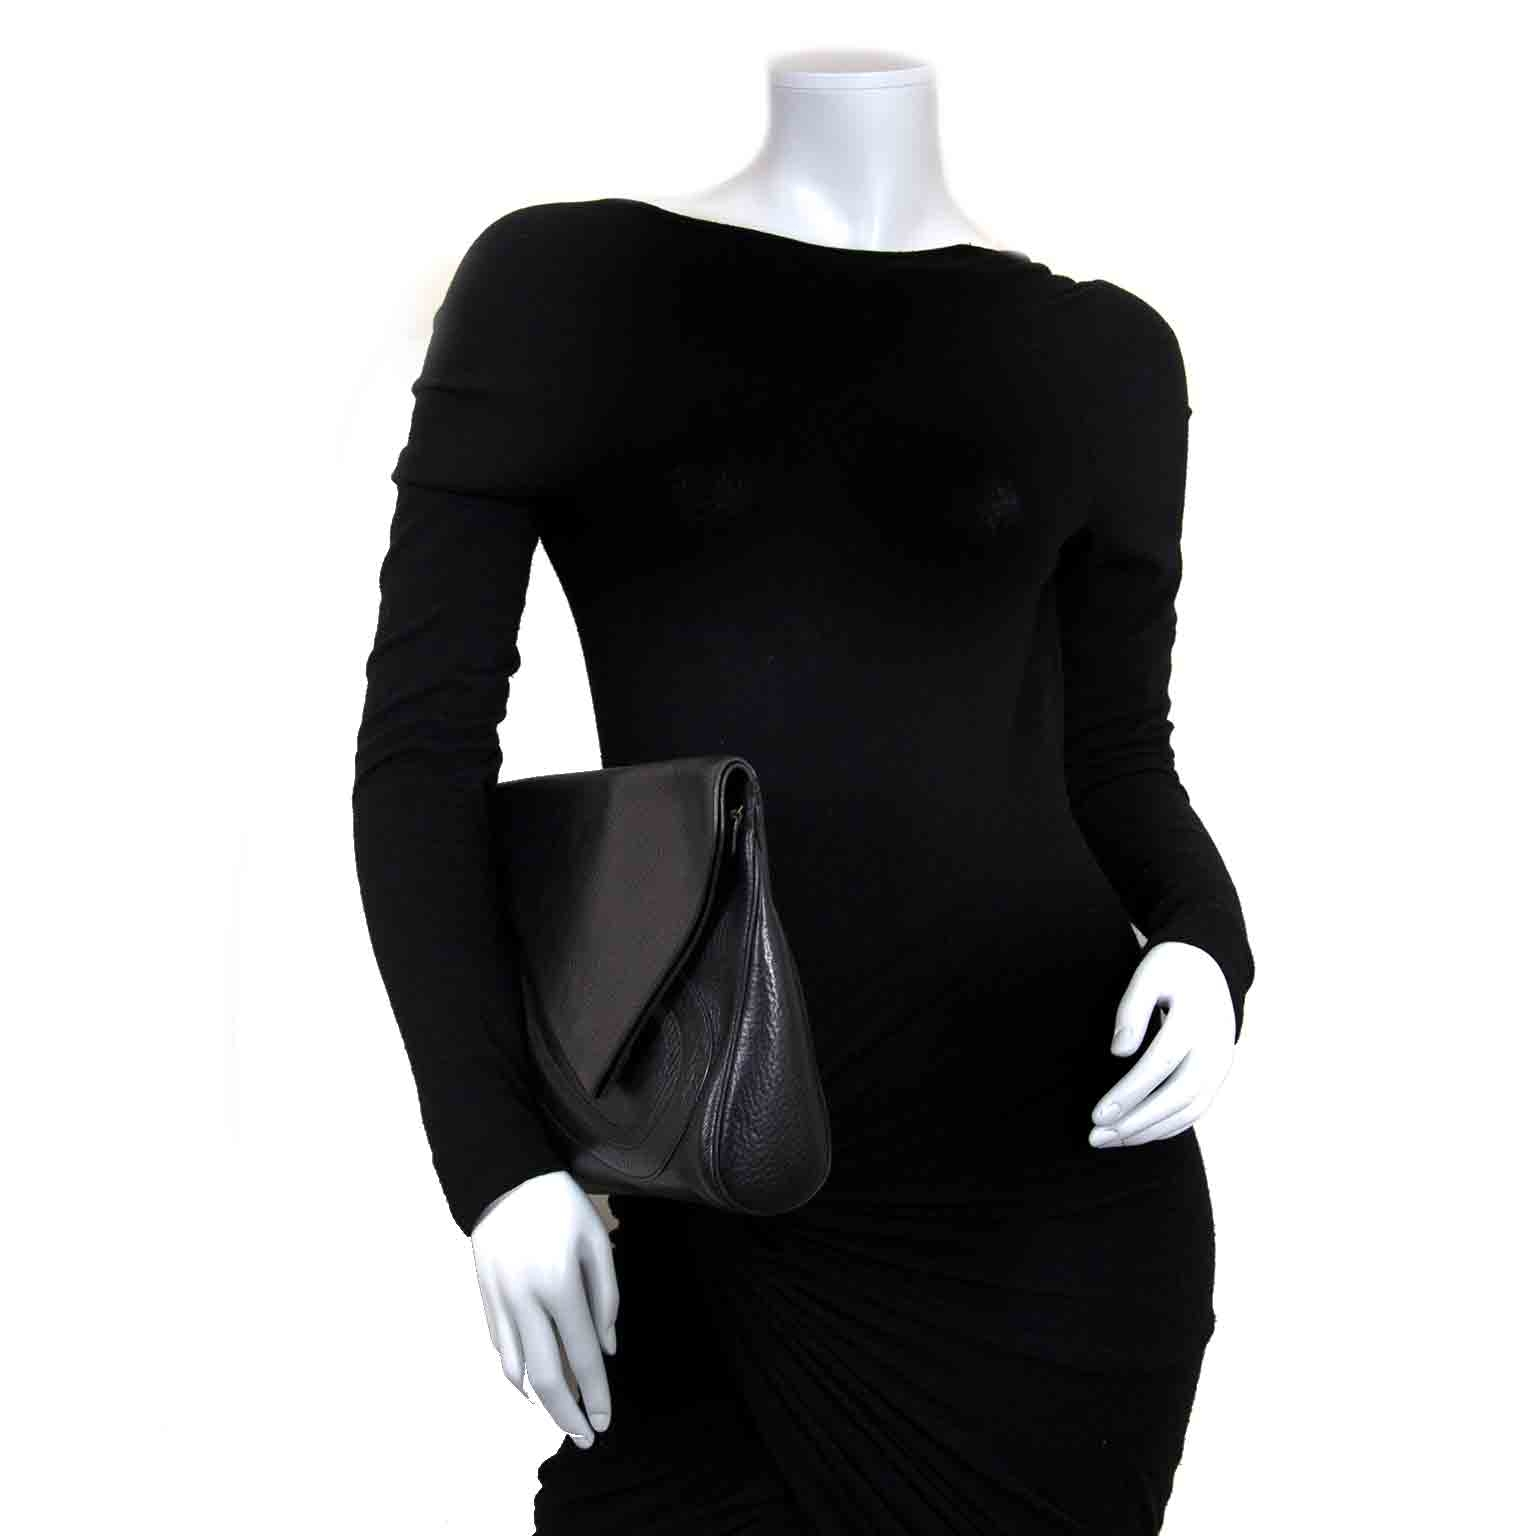 delvaux briudille gm black clutch now for sale at labellov vintage fashion webshop belgium